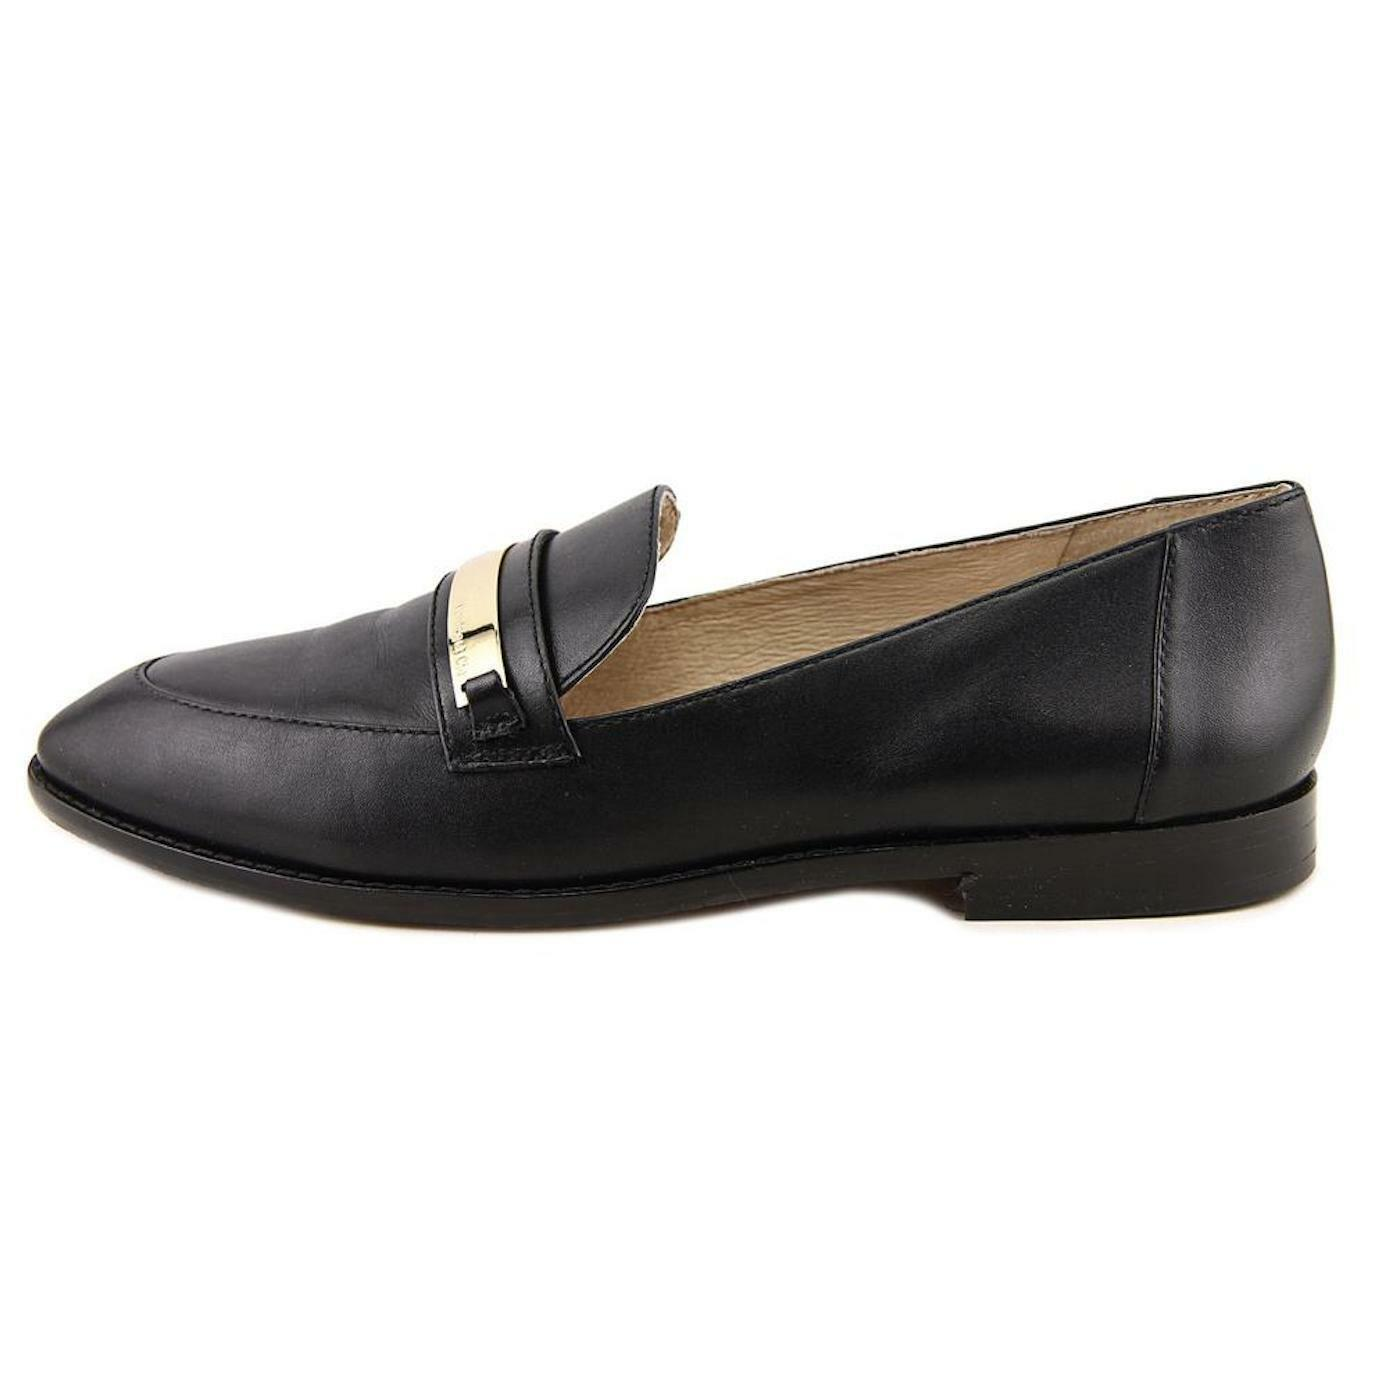 Louise Et Cie Cie Cie Lo-Jan Apron Toe Black Nappa Leather Loafer Sz 7 NEW 3dbc27